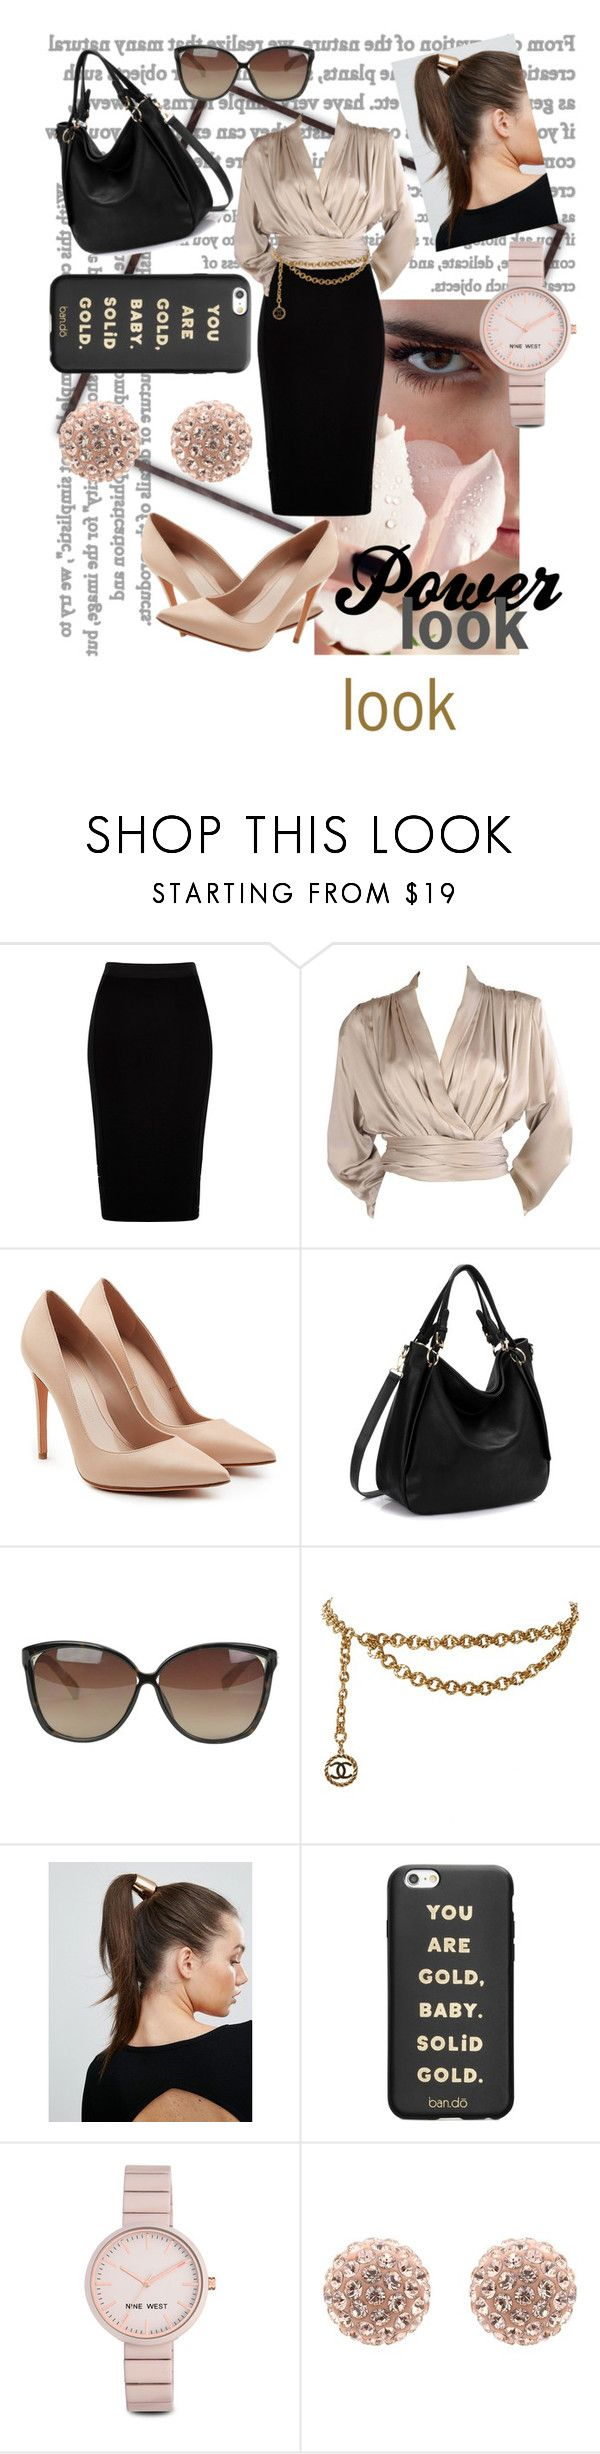 """""""Woman in Rose"""" by reynaliwanag ❤ liked on Polyvore featuring River Island, Yves Saint Laurent, Alexander McQueen, Linda Farrow, Chanel, Johnny Loves Rosie, ban.do and Nine West"""